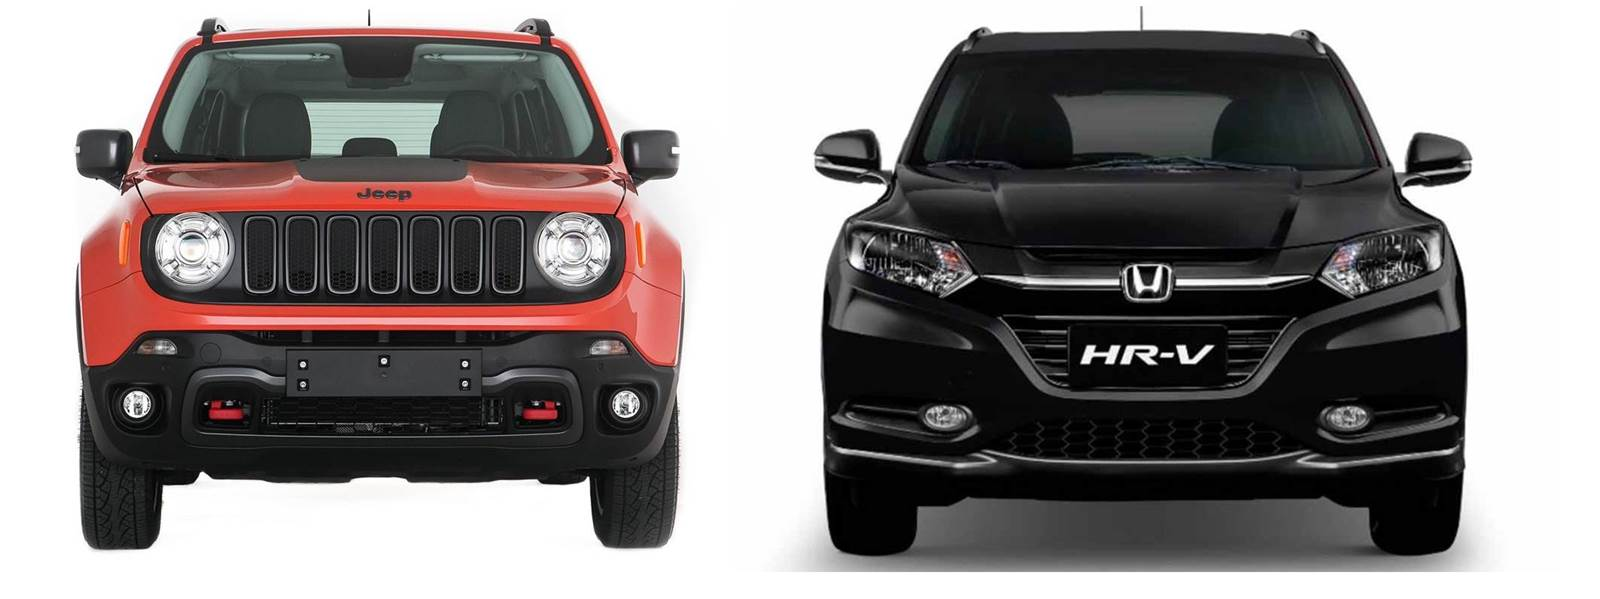 Jeep Renegade x Honda HR-V - frente